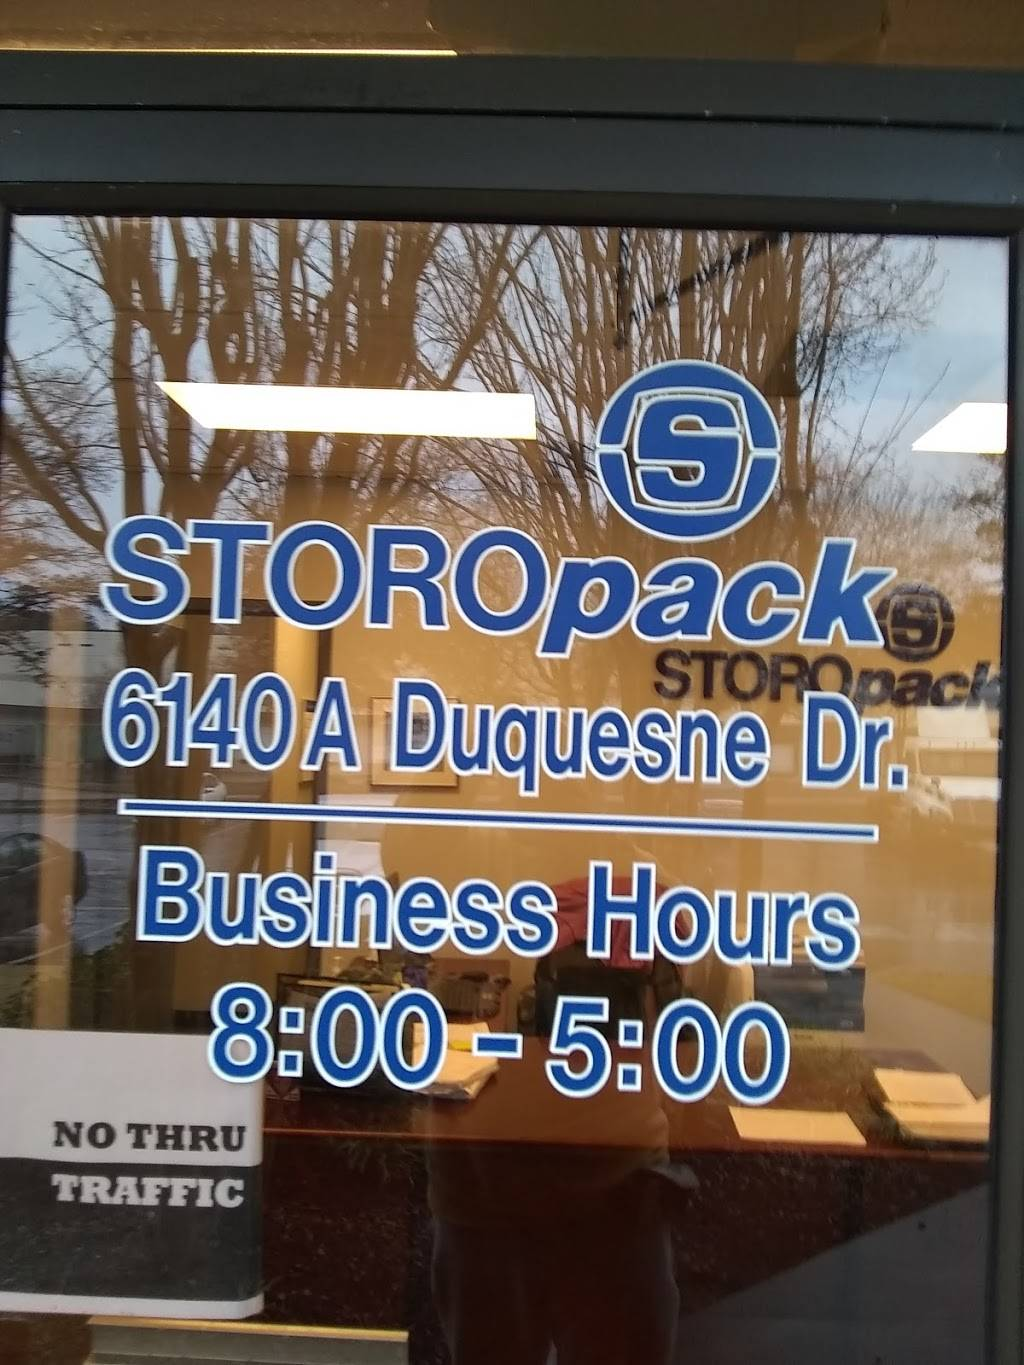 Storopack, Inc. - store  | Photo 5 of 6 | Address: 6140 Duquesne Dr SW, Atlanta, GA 30336, USA | Phone: (404) 344-6451